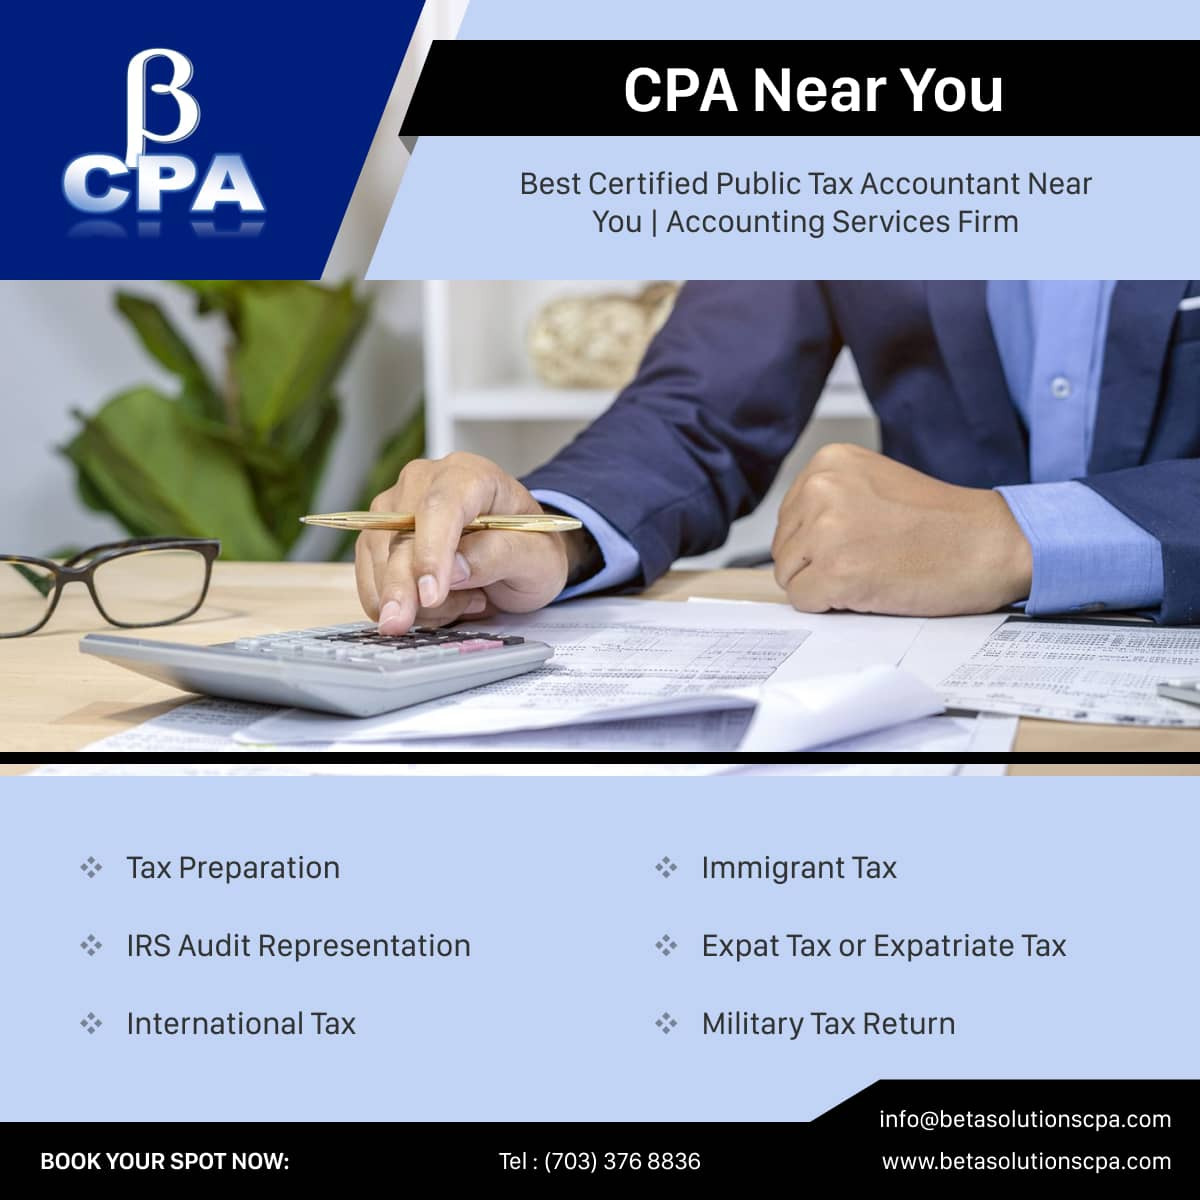 Military Tax Return & Tax Preparation Services from Beta Solutions CPA